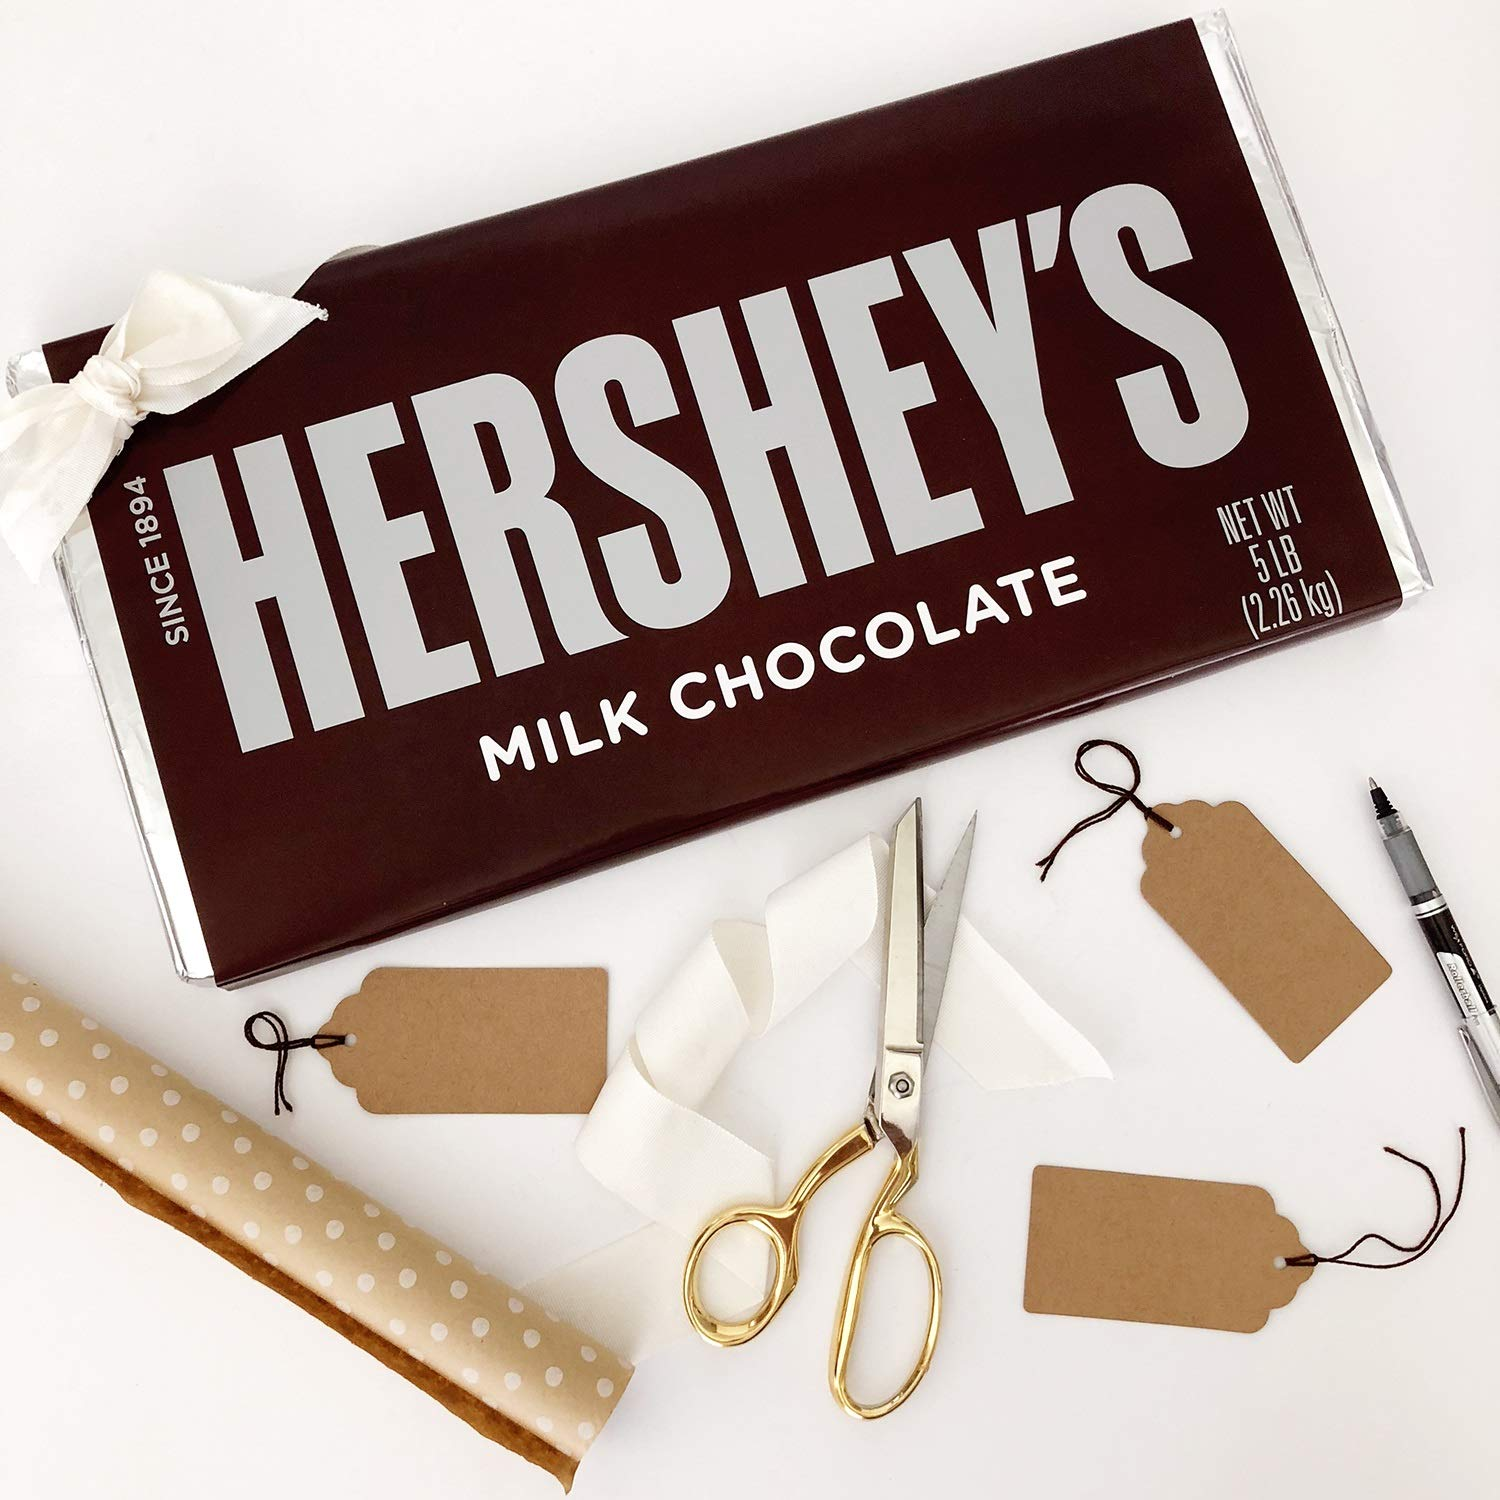 HERSHEY'S 5 Pound Chocolate Candy Bar Gift by HERSHEY'S (Image #6)